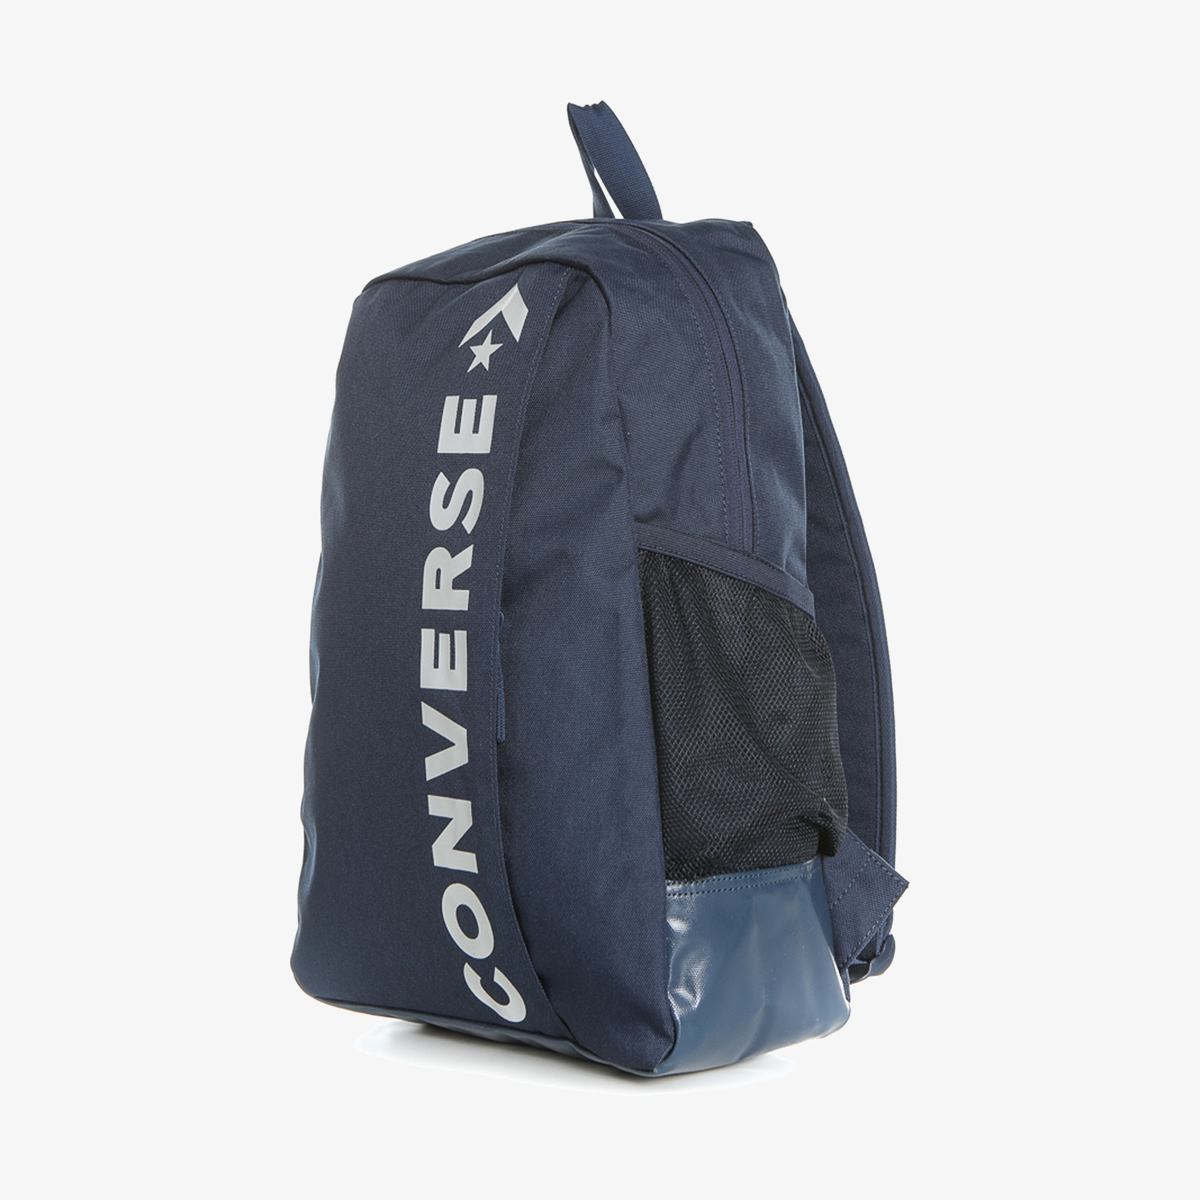 Рюкзак Converse Speed 2 Backpack